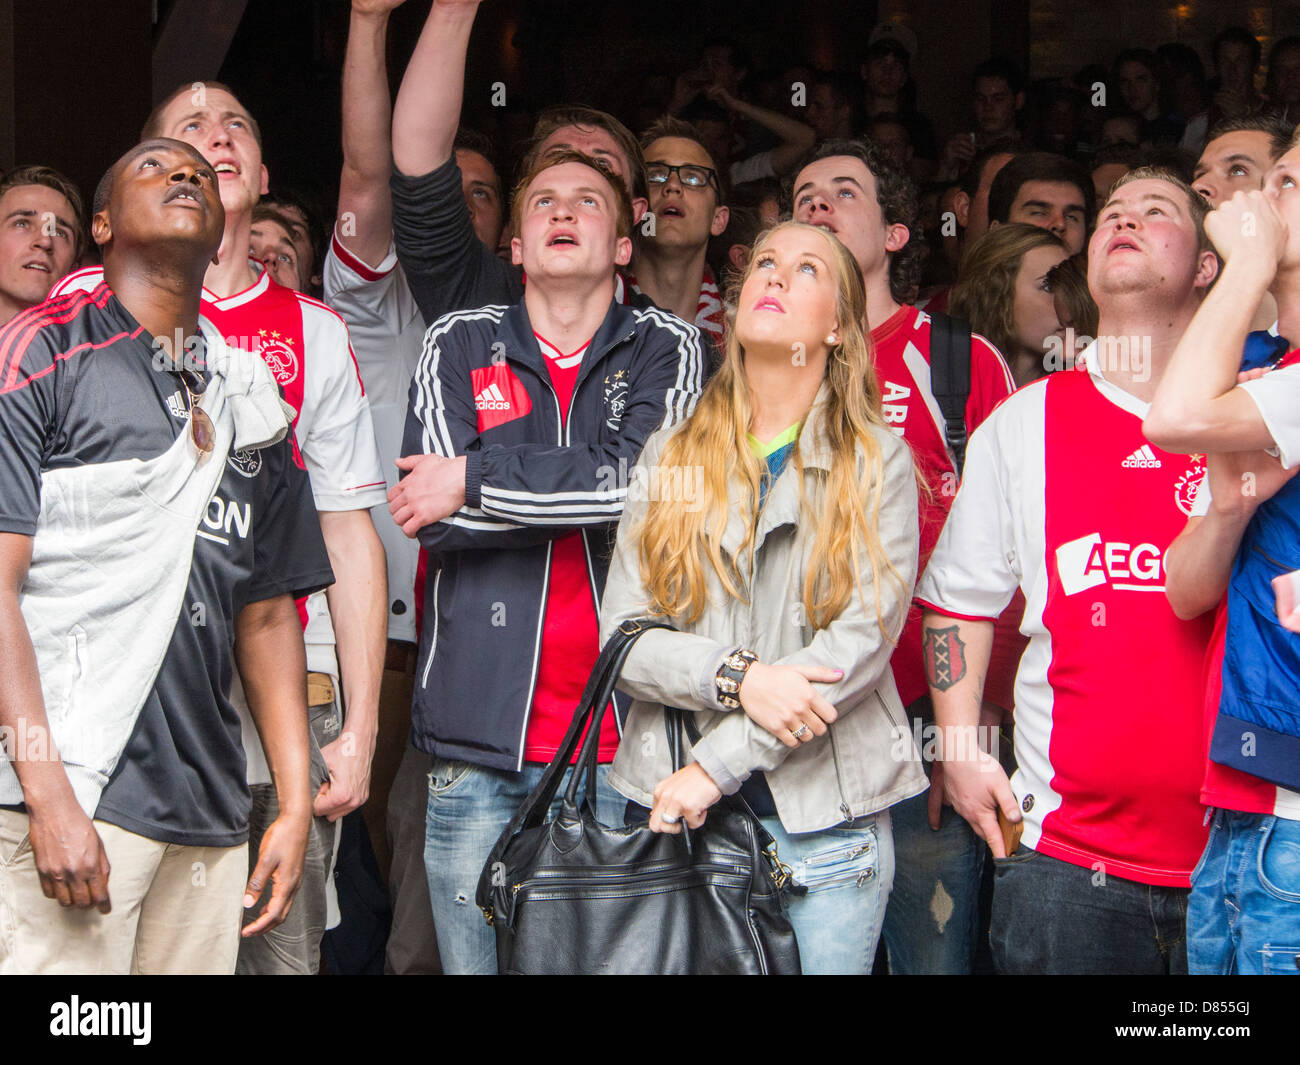 Ajax football club fans celebrate their club winning the chapionship in Amsterdam, Netherlands. - Stock Image